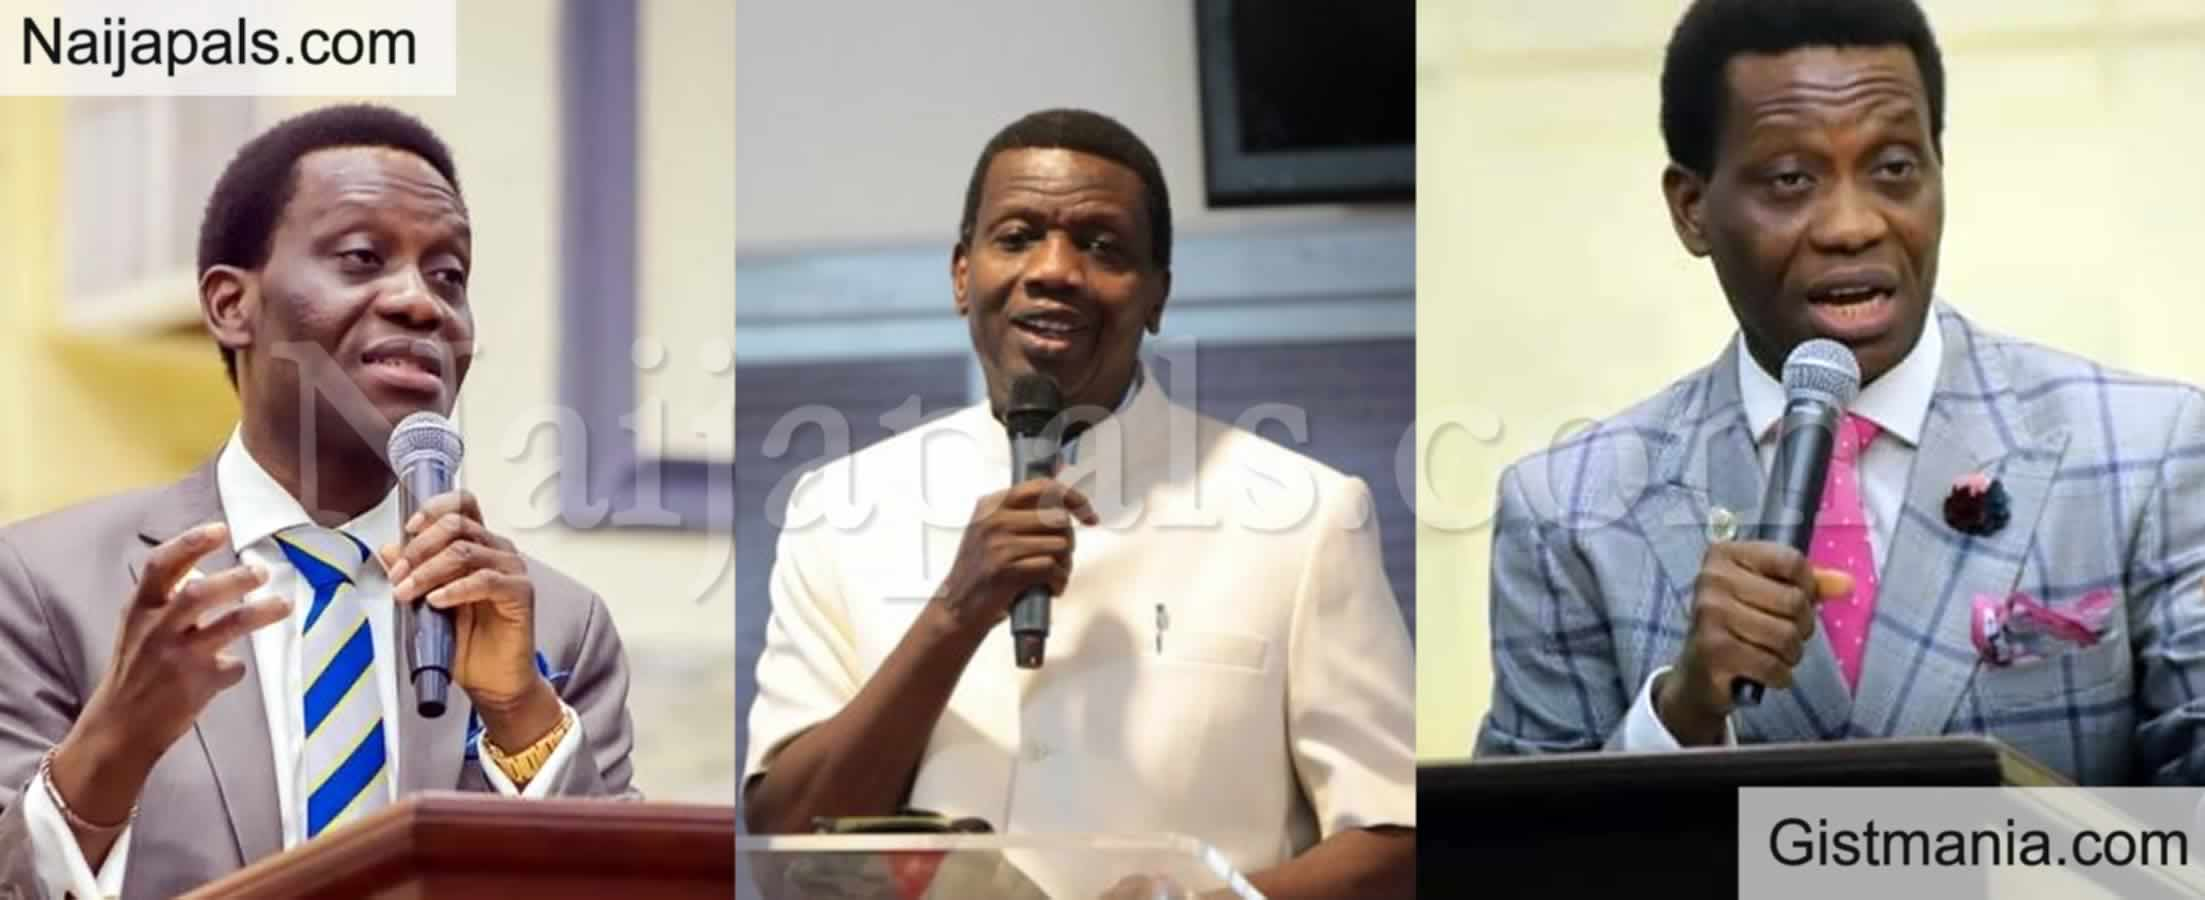 "<img alt='.' class='lazyload' data-src='https://img.gistmania.com/emot/comment.gif' /> <b>""Don't Cry For My Son, Keep On Praying For Us"" - Adeboye Urges Nigerians Over Demise Of Son</b>"